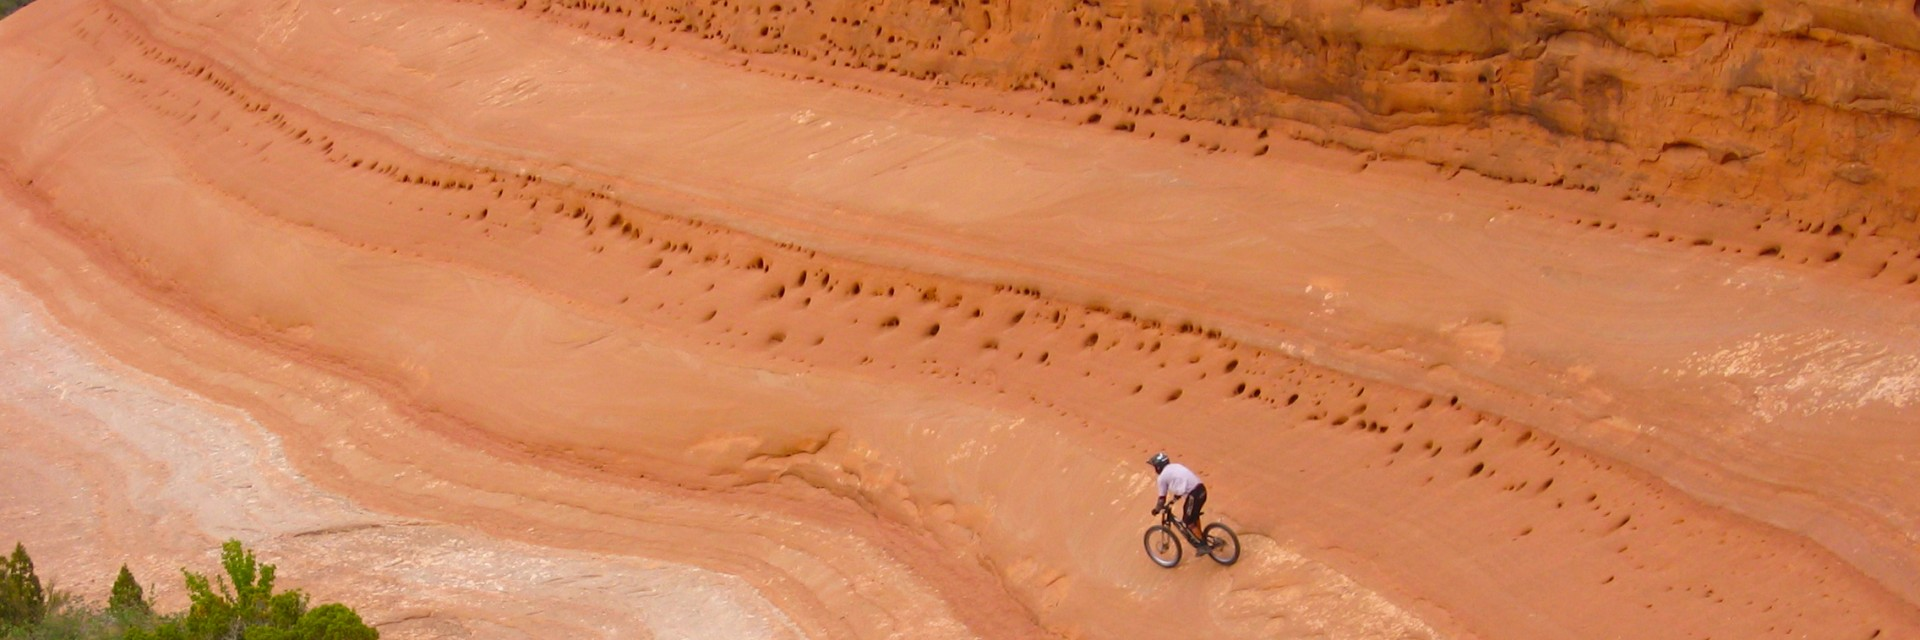 A mountain bike rider descends a massive wall of smooth slickrock during a Bartlett Wash guided mountain bike tour